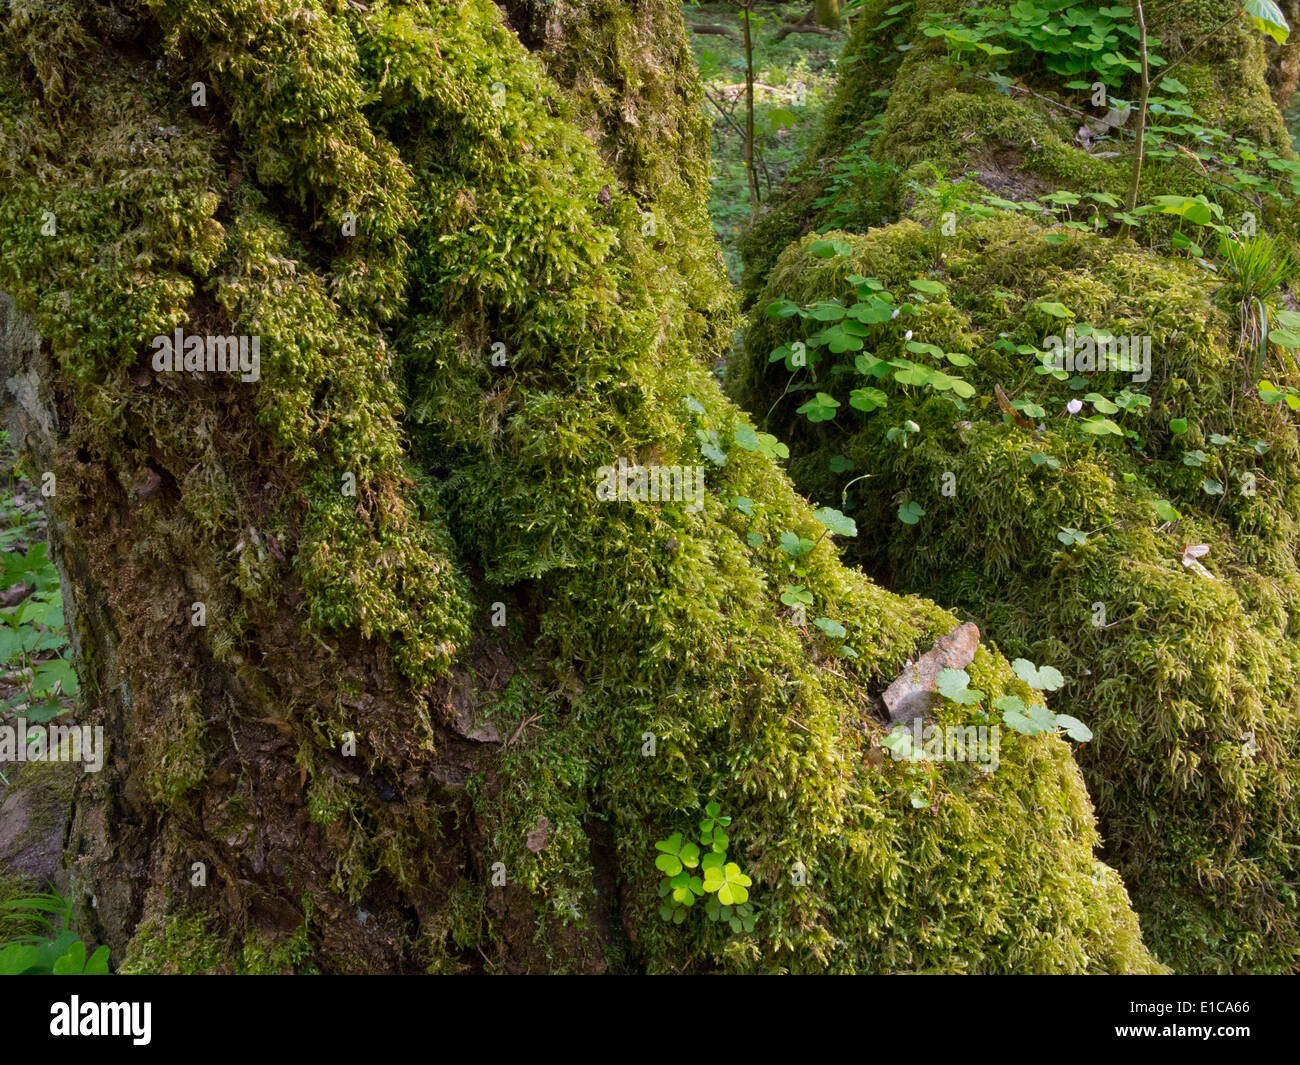 Whole moss wrapped hornbeam tree with some sorrel in springtime - Stock Image